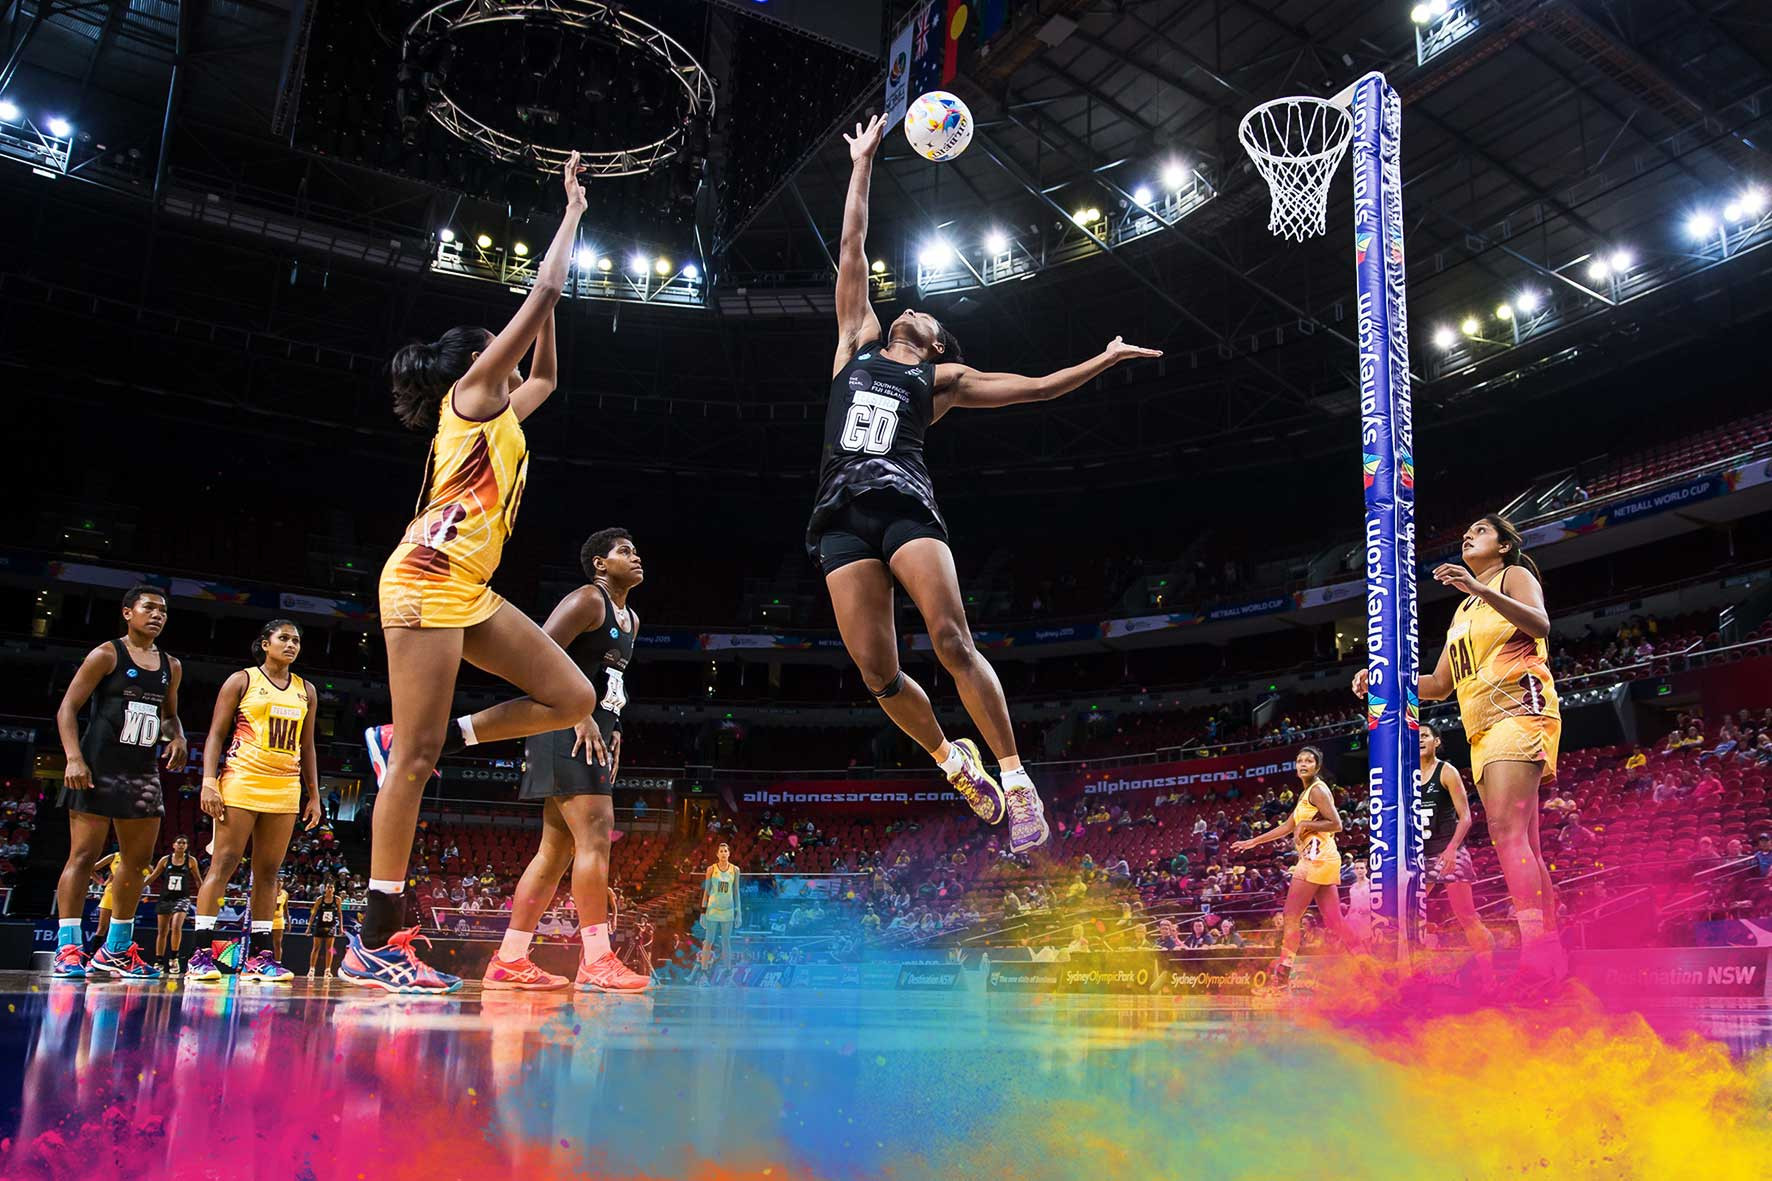 Dance, music, projections and pyrotechnics will be witnessed by an arena audience of more than 6,000 people and an international TV audience of hundreds of thousands during the Opening Ceremony for the Netball World Cup in Liverpool ©NWC2019